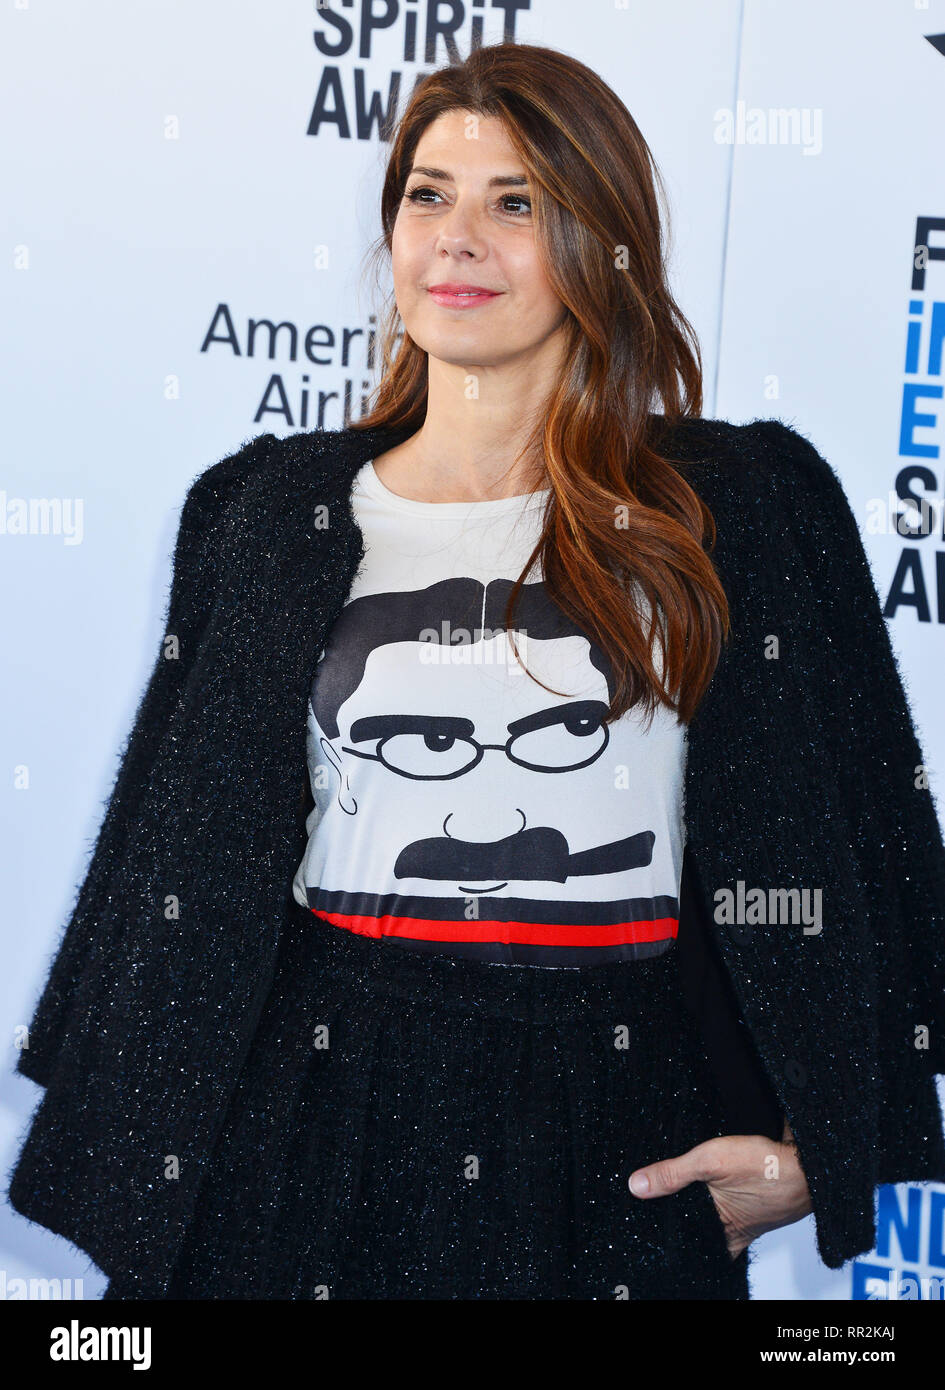 Santa Monica, California, USA. 23rd Feb, 2019. Marisa Tomei 115 attends the 2019 Film Independent Spirit Awards on February 23, 2019 in Santa Monica, California. Credit: Tsuni / USA/Alamy Live News - Stock Image